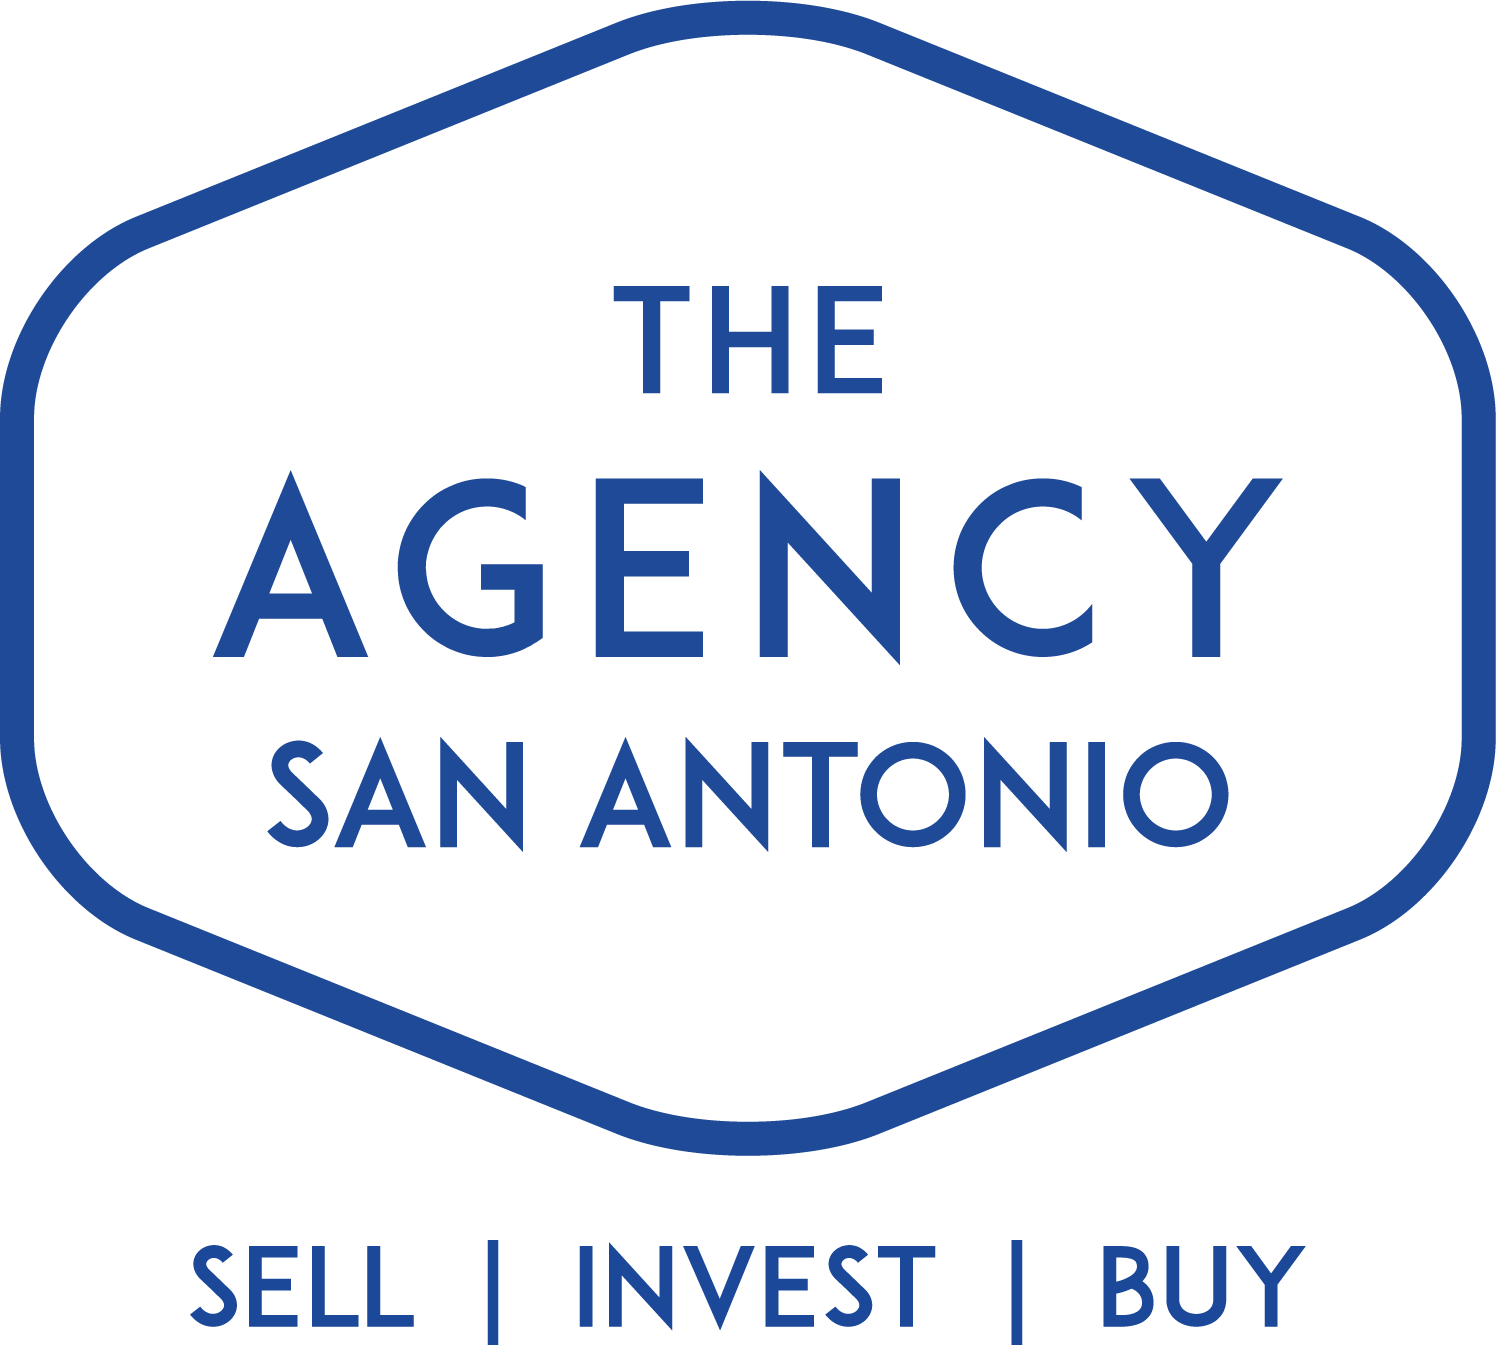 The Agency San Antonio real estate services and home buying